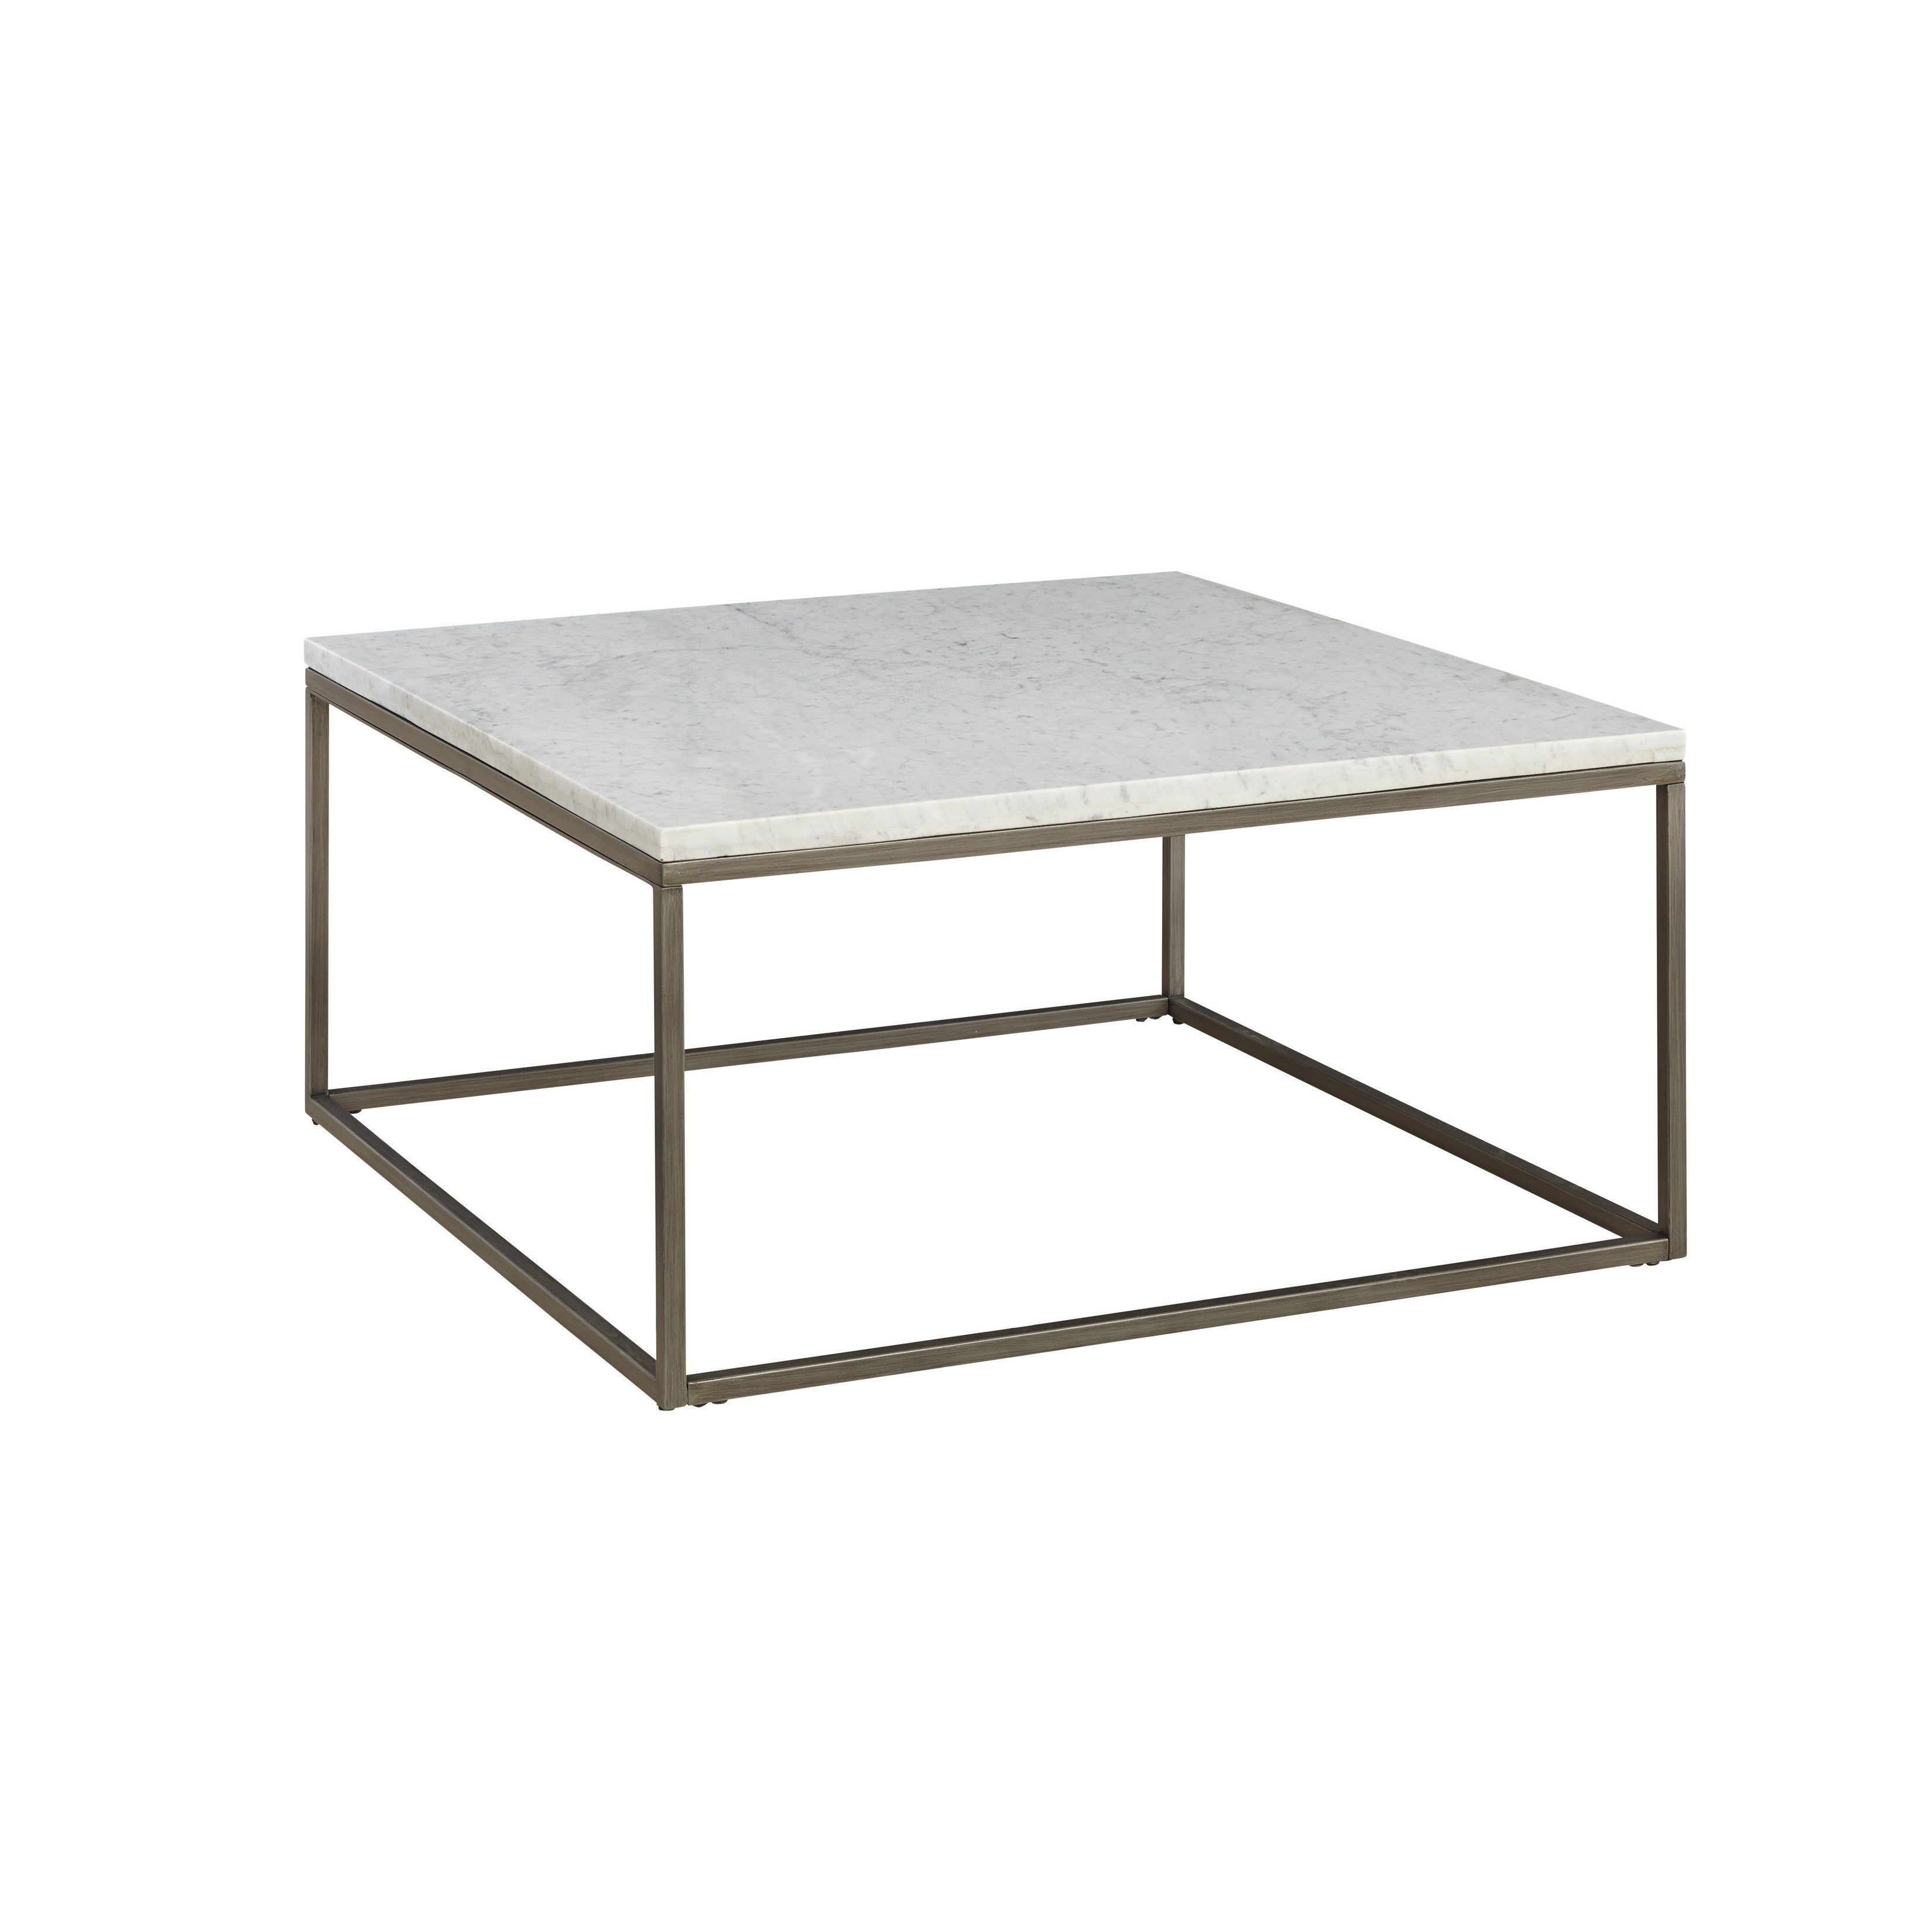 Our Best Living Room Furniture Deals Marble Top Coffee Table Coffee Table Square Marble Coffee Table [ 3300 x 3300 Pixel ]